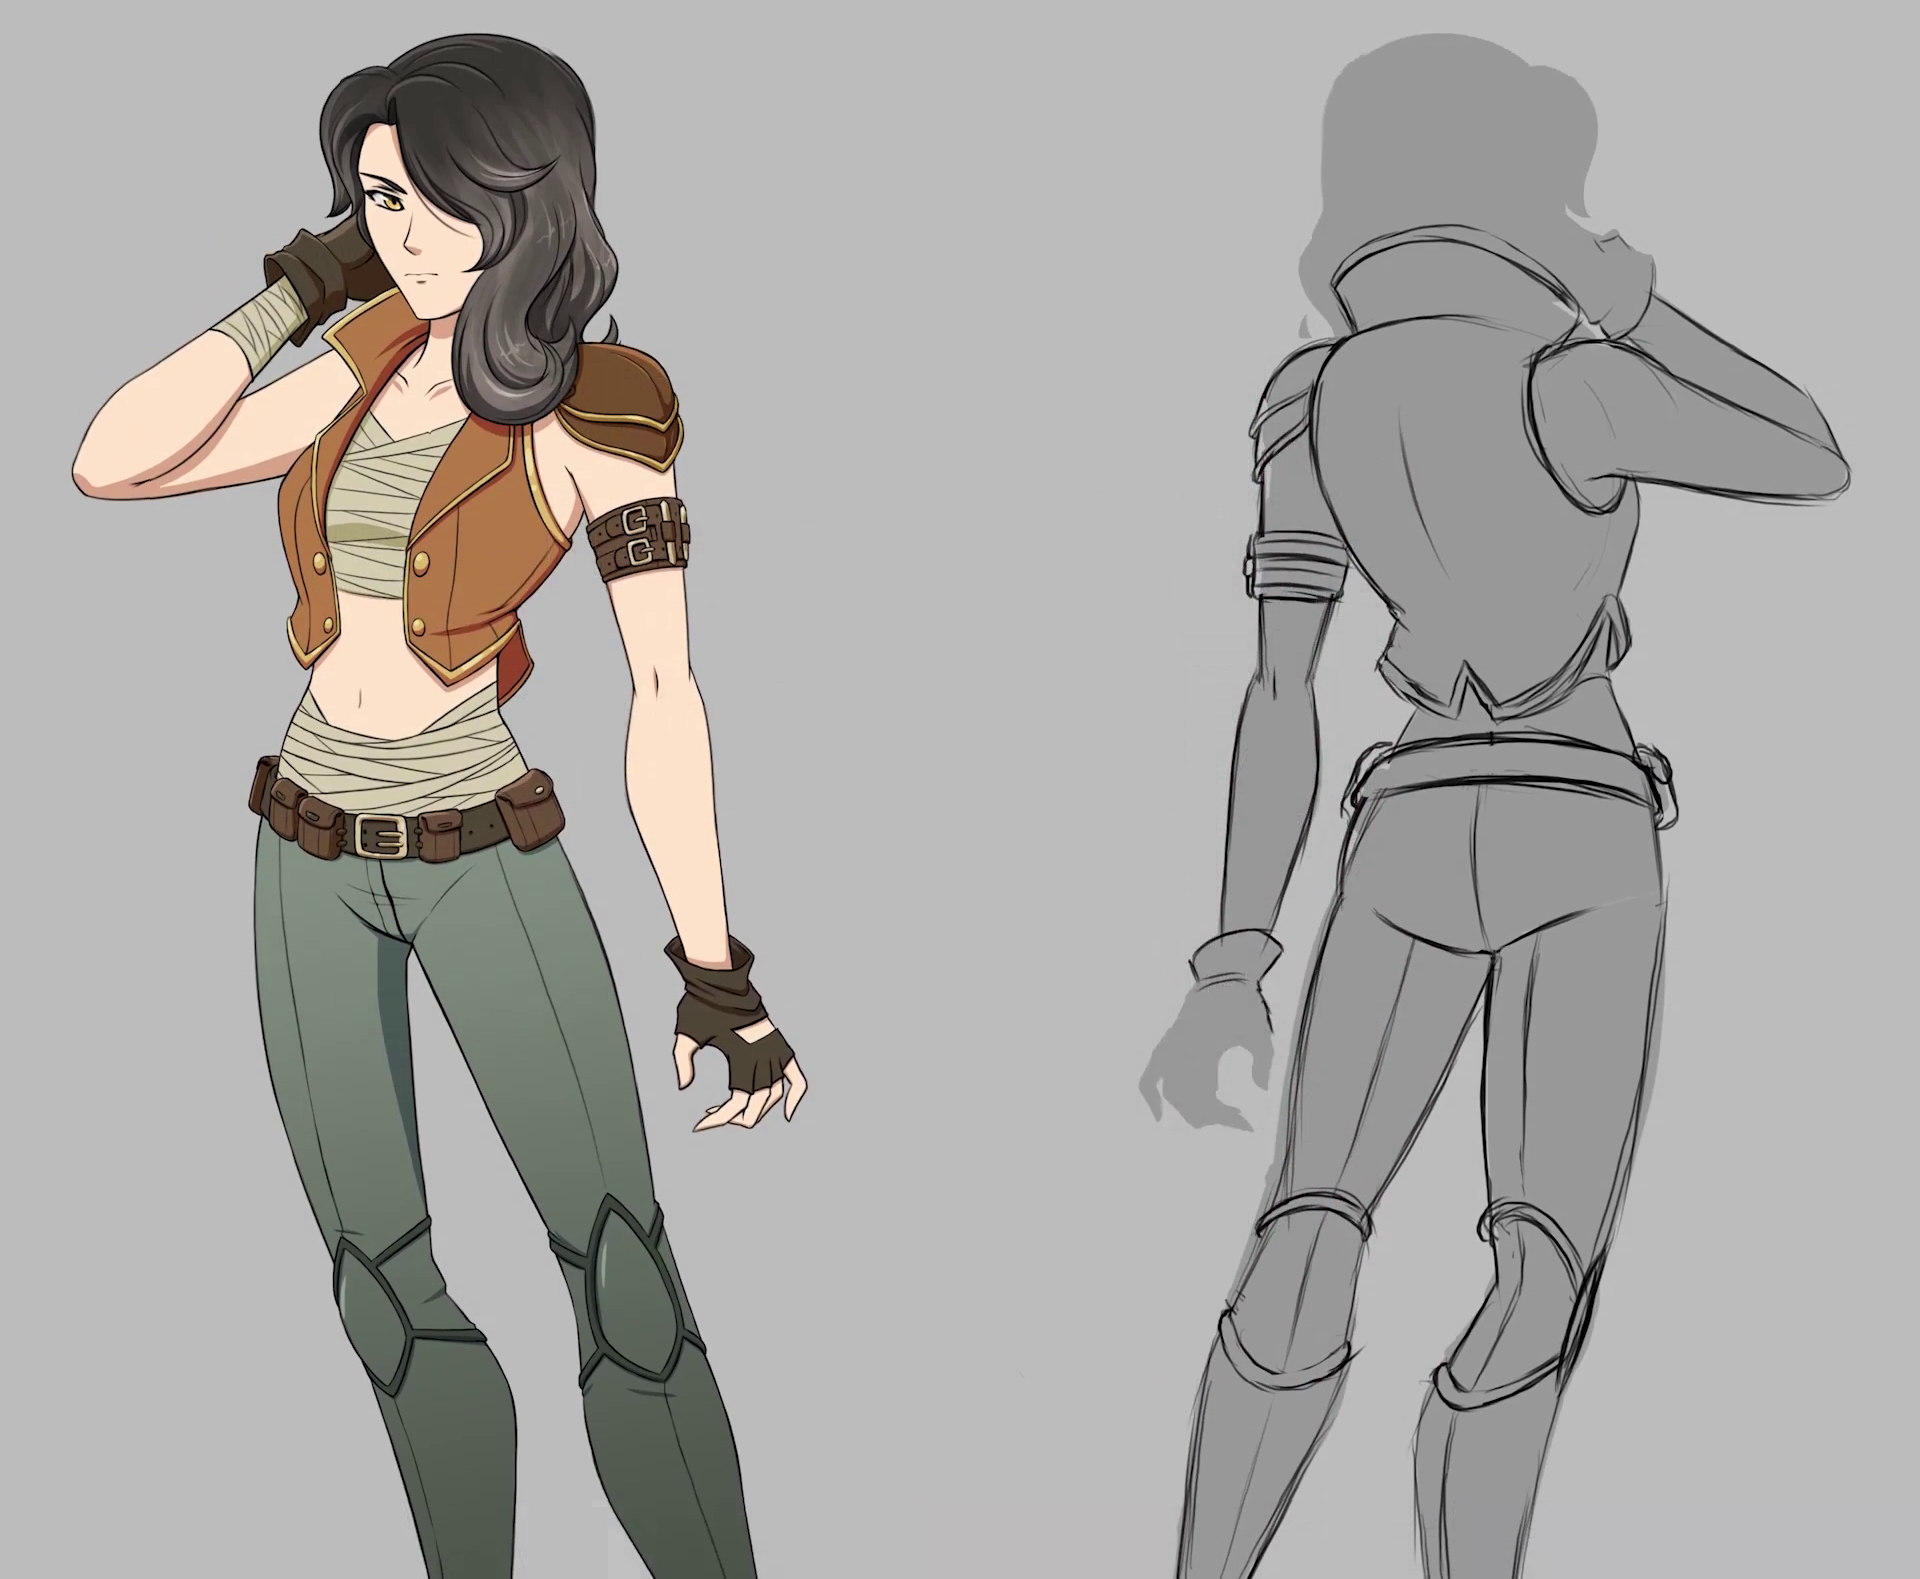 Images of Rwby Emerald Concept Art - #rock-cafe